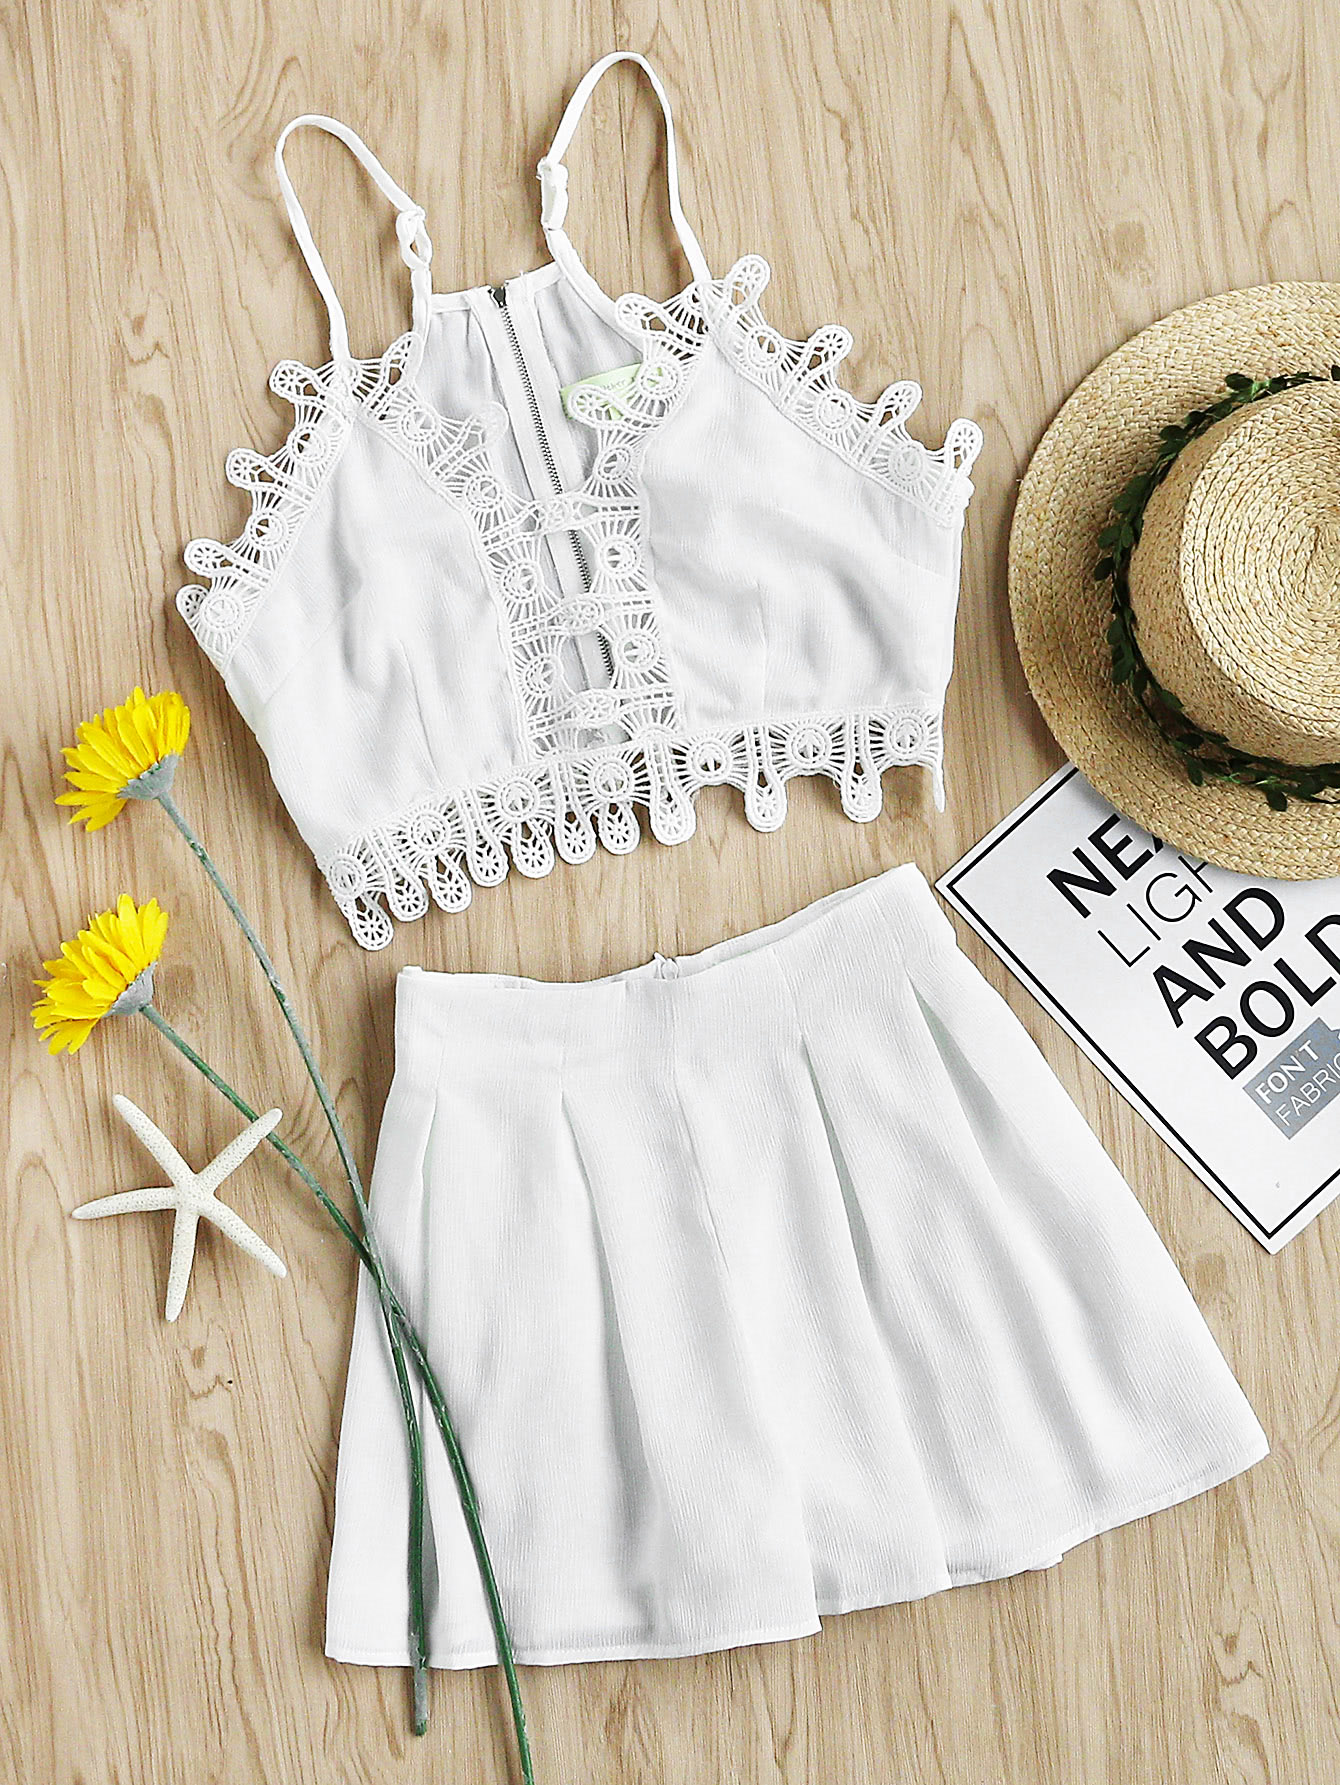 Lace Trim Cami Top And Box Pleated Shorts Set pajama lace trim cami top and shorts